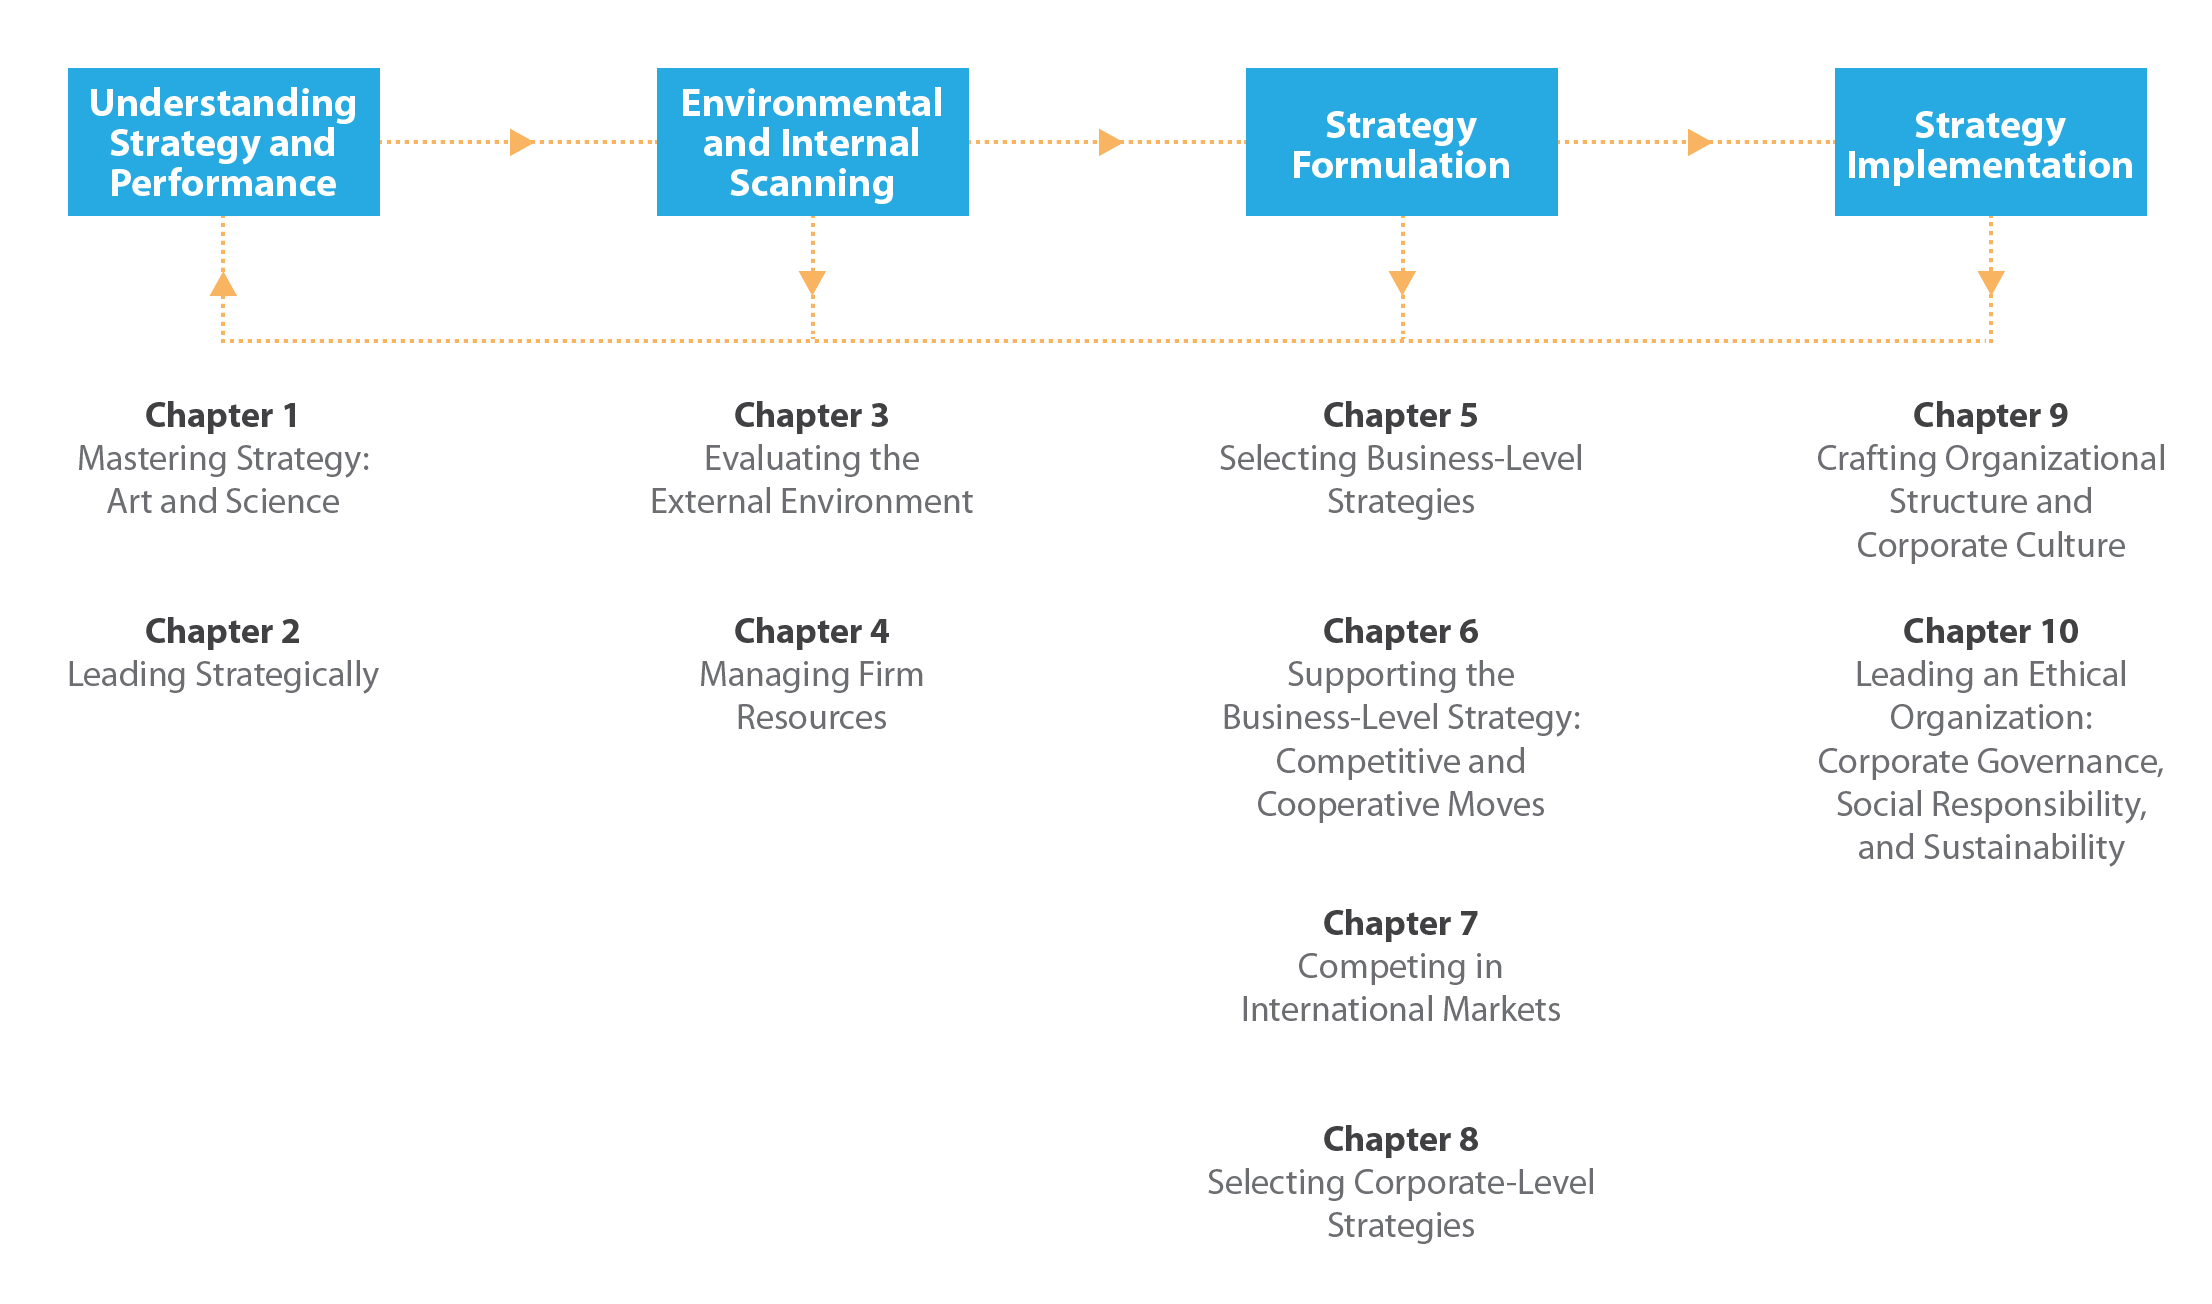 Figure 1-11: Overall Model of the Strategic Management Process